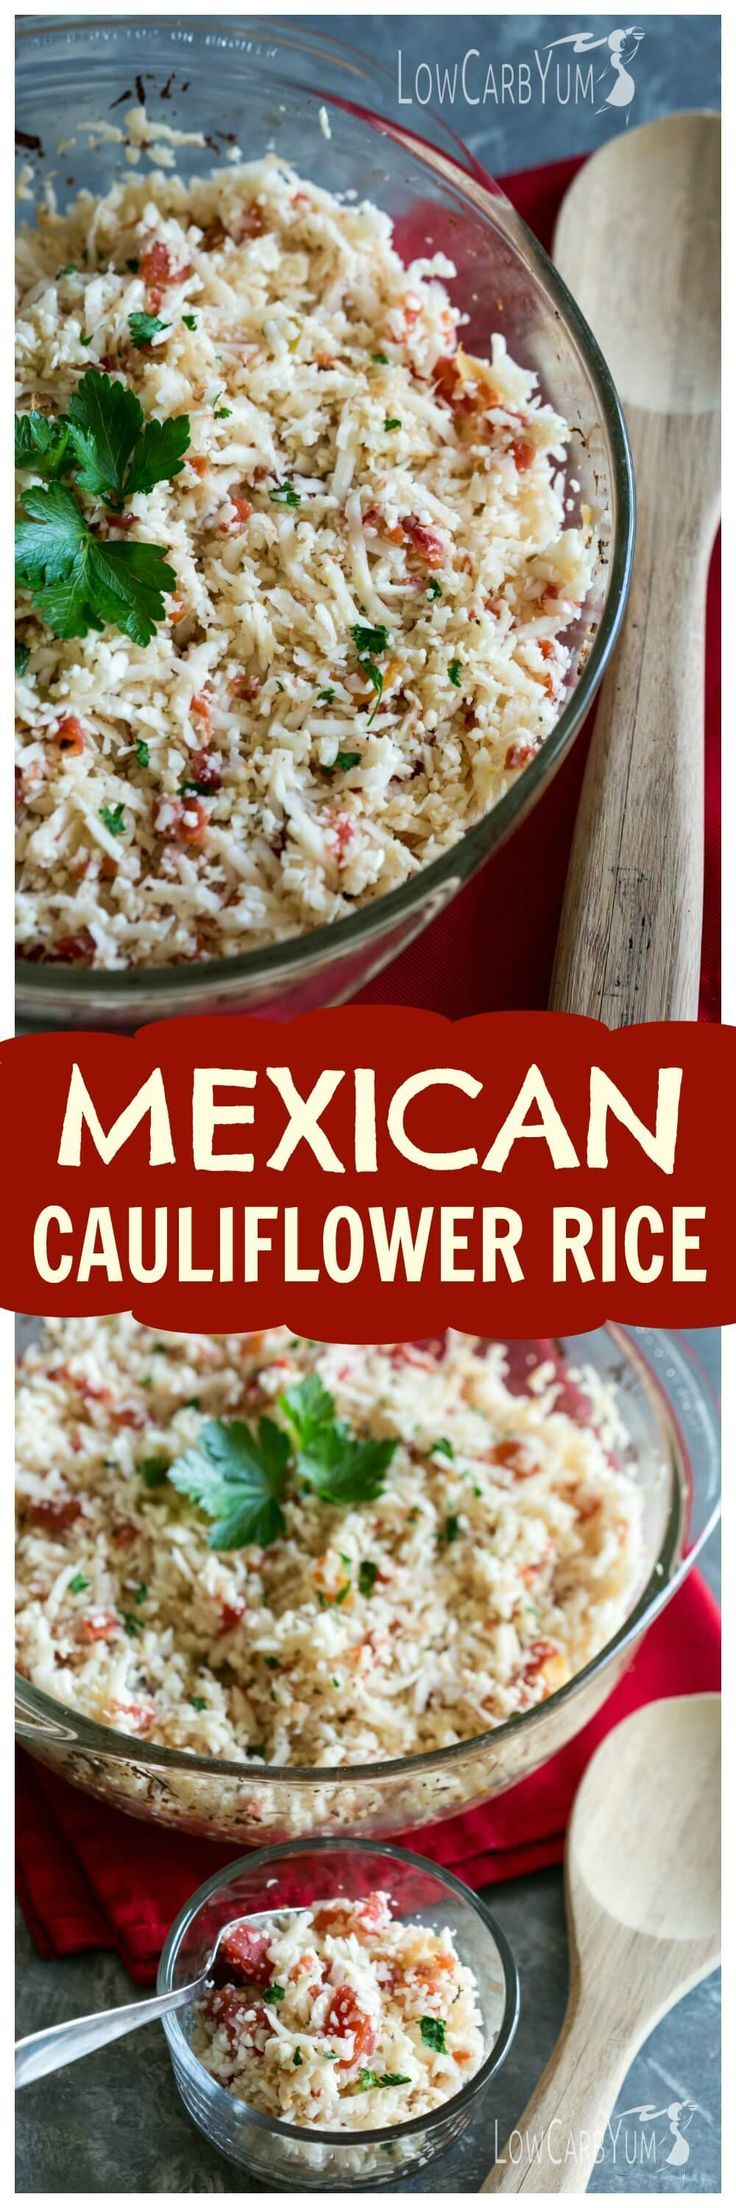 An easy low carb Mexican cauliflower rice that only takes a couple minutes to prepare. And, this simple dish can be made with only 4 common ingredients! http://LowCarbYum.com